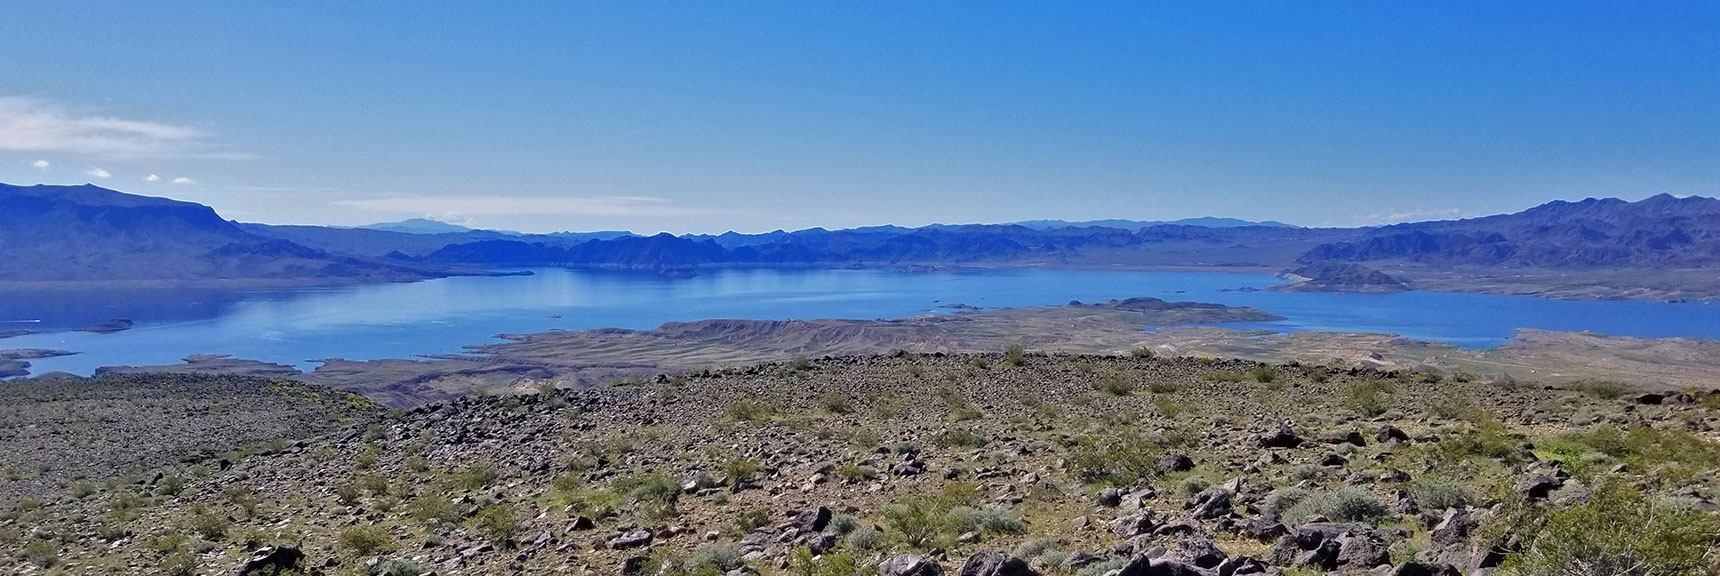 View of Lake Mead from Summit of Black Mesa in Lake Mead National Recreation Area, Nevada